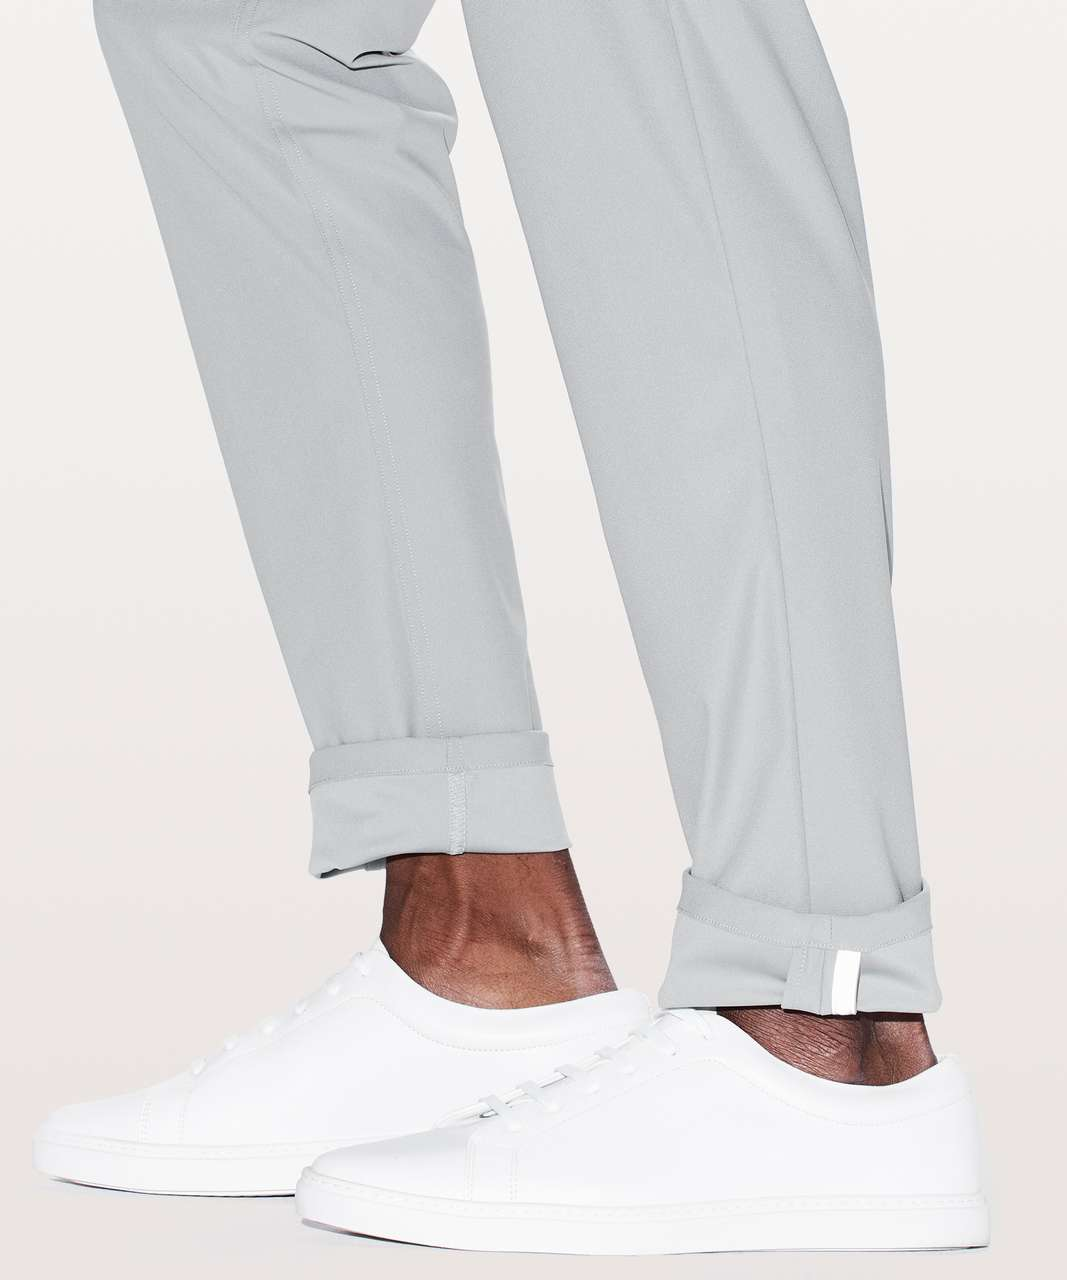 "Lululemon ABC Pant Classic *34"" - Light Cast"